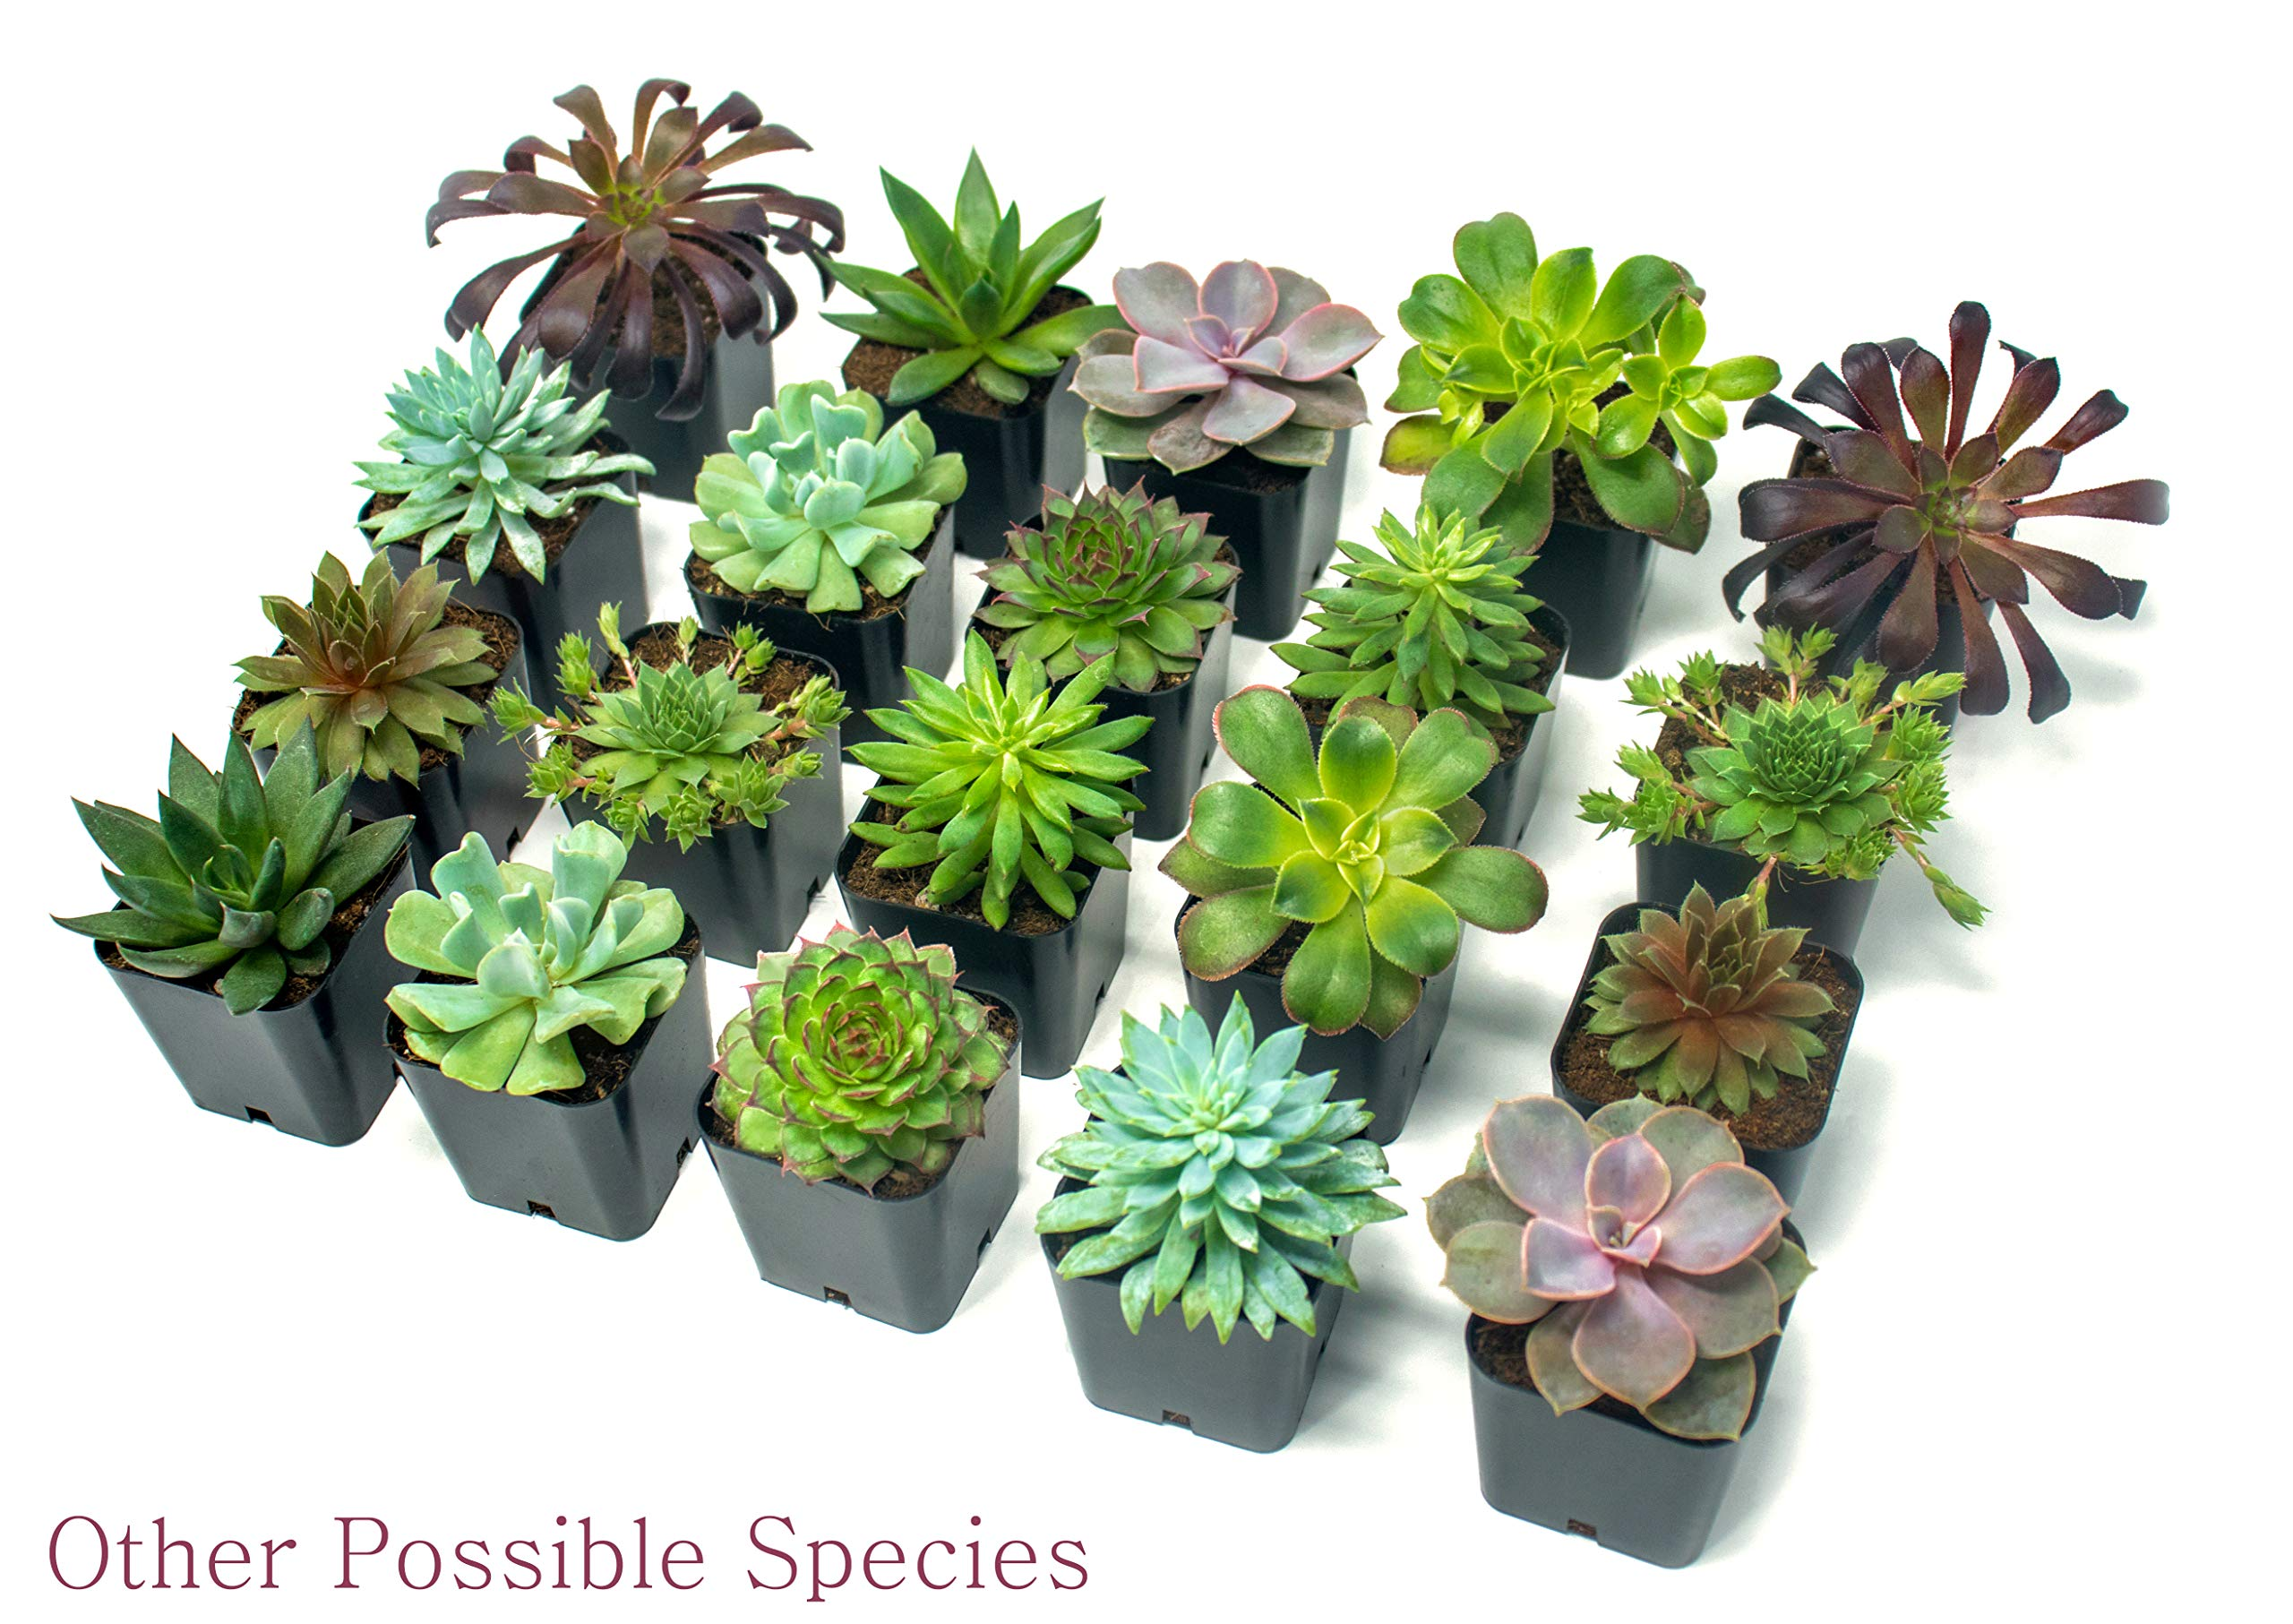 Succulent Plants (5 Pack), Fully Rooted in Planter Pots with Soil -  Real Live Potted Succulents / Unique Indoor Cactus Decor by Plants for Pets 5 HAND SELECTED: Every pack of succulents we send is hand-picked. You will receive a unique collection of species that are FULLY ROOTED IN 2 INCH POTS, which will be similar to the product photos (see photo 2 for scale). Note that we rotate our nursery stock often, so the exact species we send changes every week. THE EASIEST HOUSE PLANTS: More appealing than artificial plastic or fake faux plants, and care is a cinch. If you think you can't keep houseplants alive, you're wrong; our succulents don't require fertilizer and can be planted in a decorative pot of your choice within seconds. DIY HOME DECOR: The possibilities are only limited by your imagination; display them in a plant holder, a wall mount, a geometric glass vase, or even in a live wreath. Because of their amazingly low care requirements, they can even make the perfect desk centerpiece for your office.